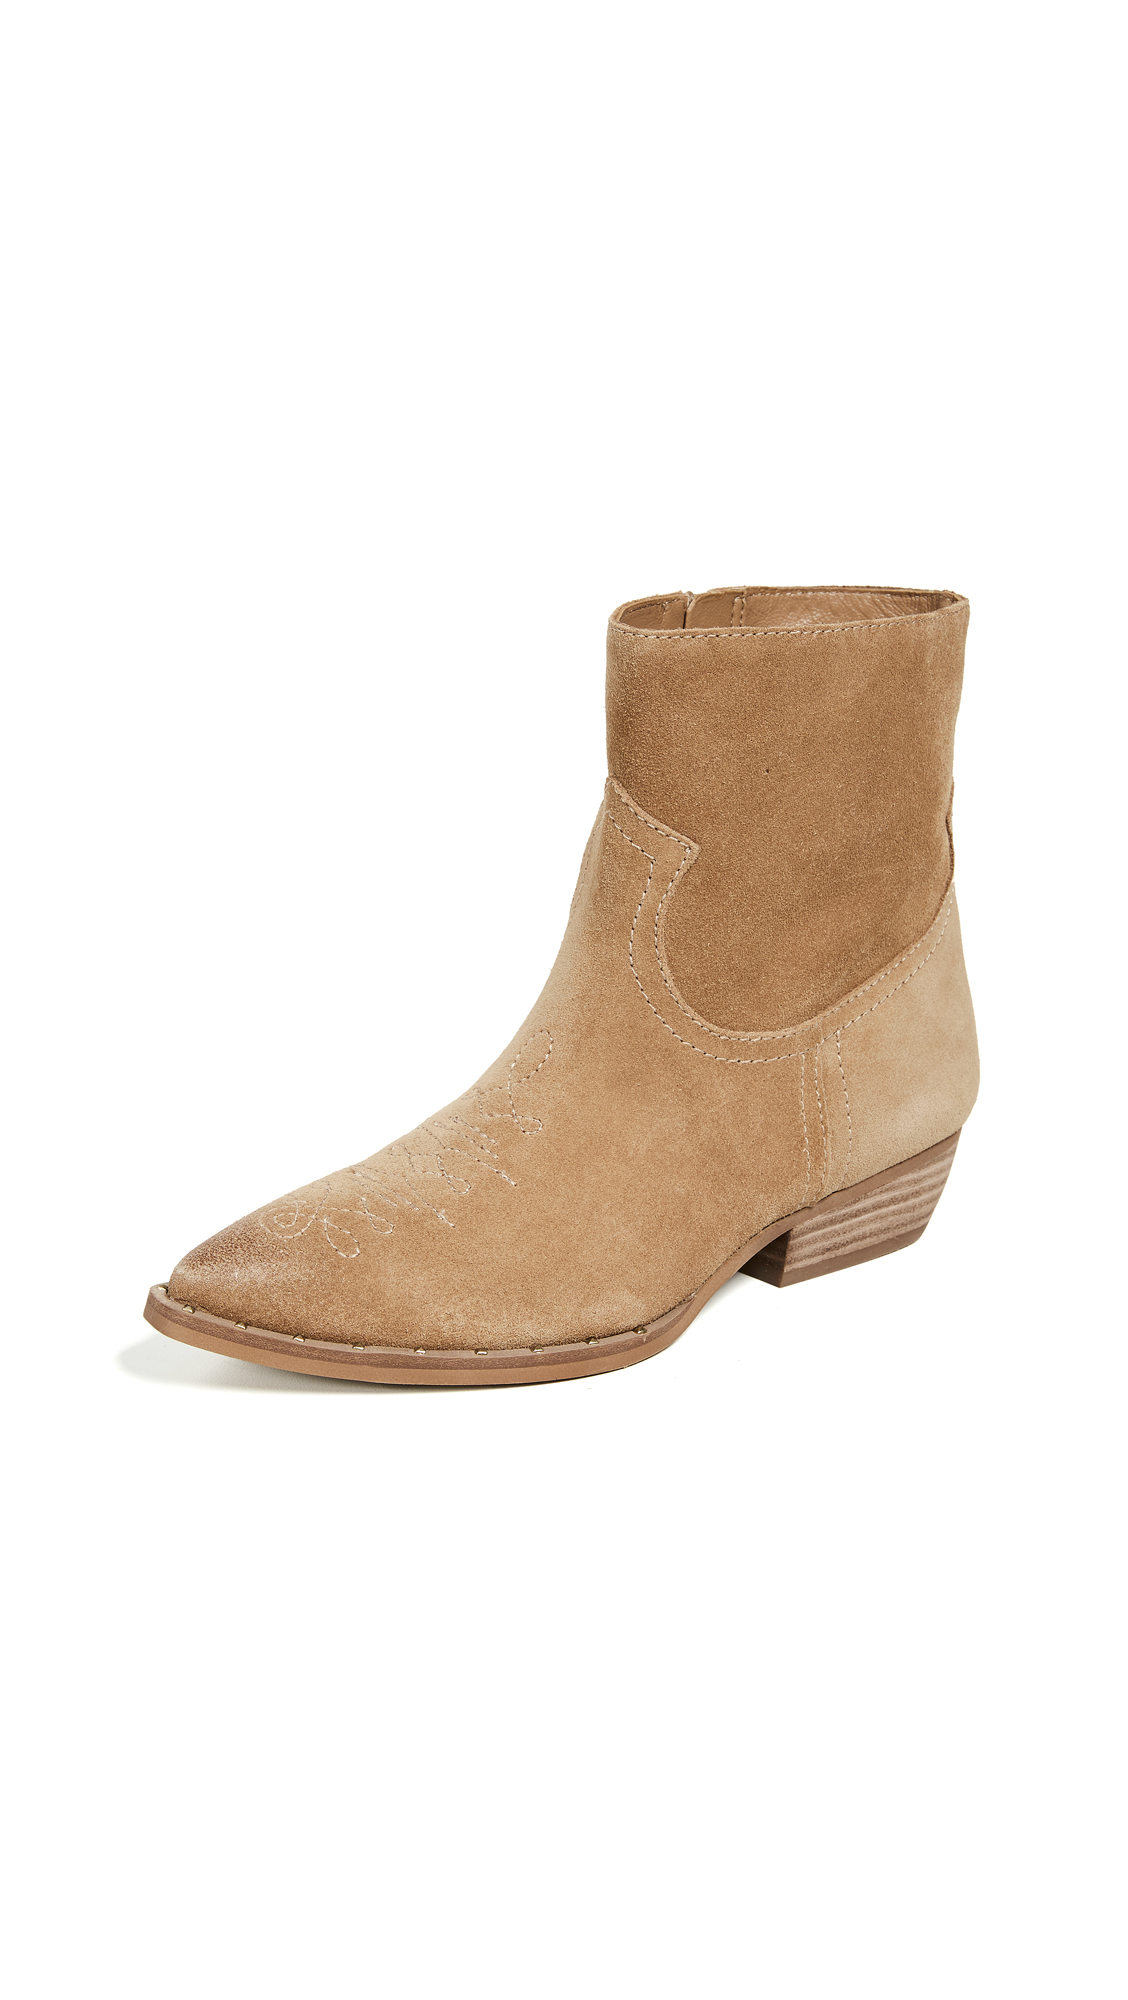 Sam Edelman Ava Booties - Golden Caramel